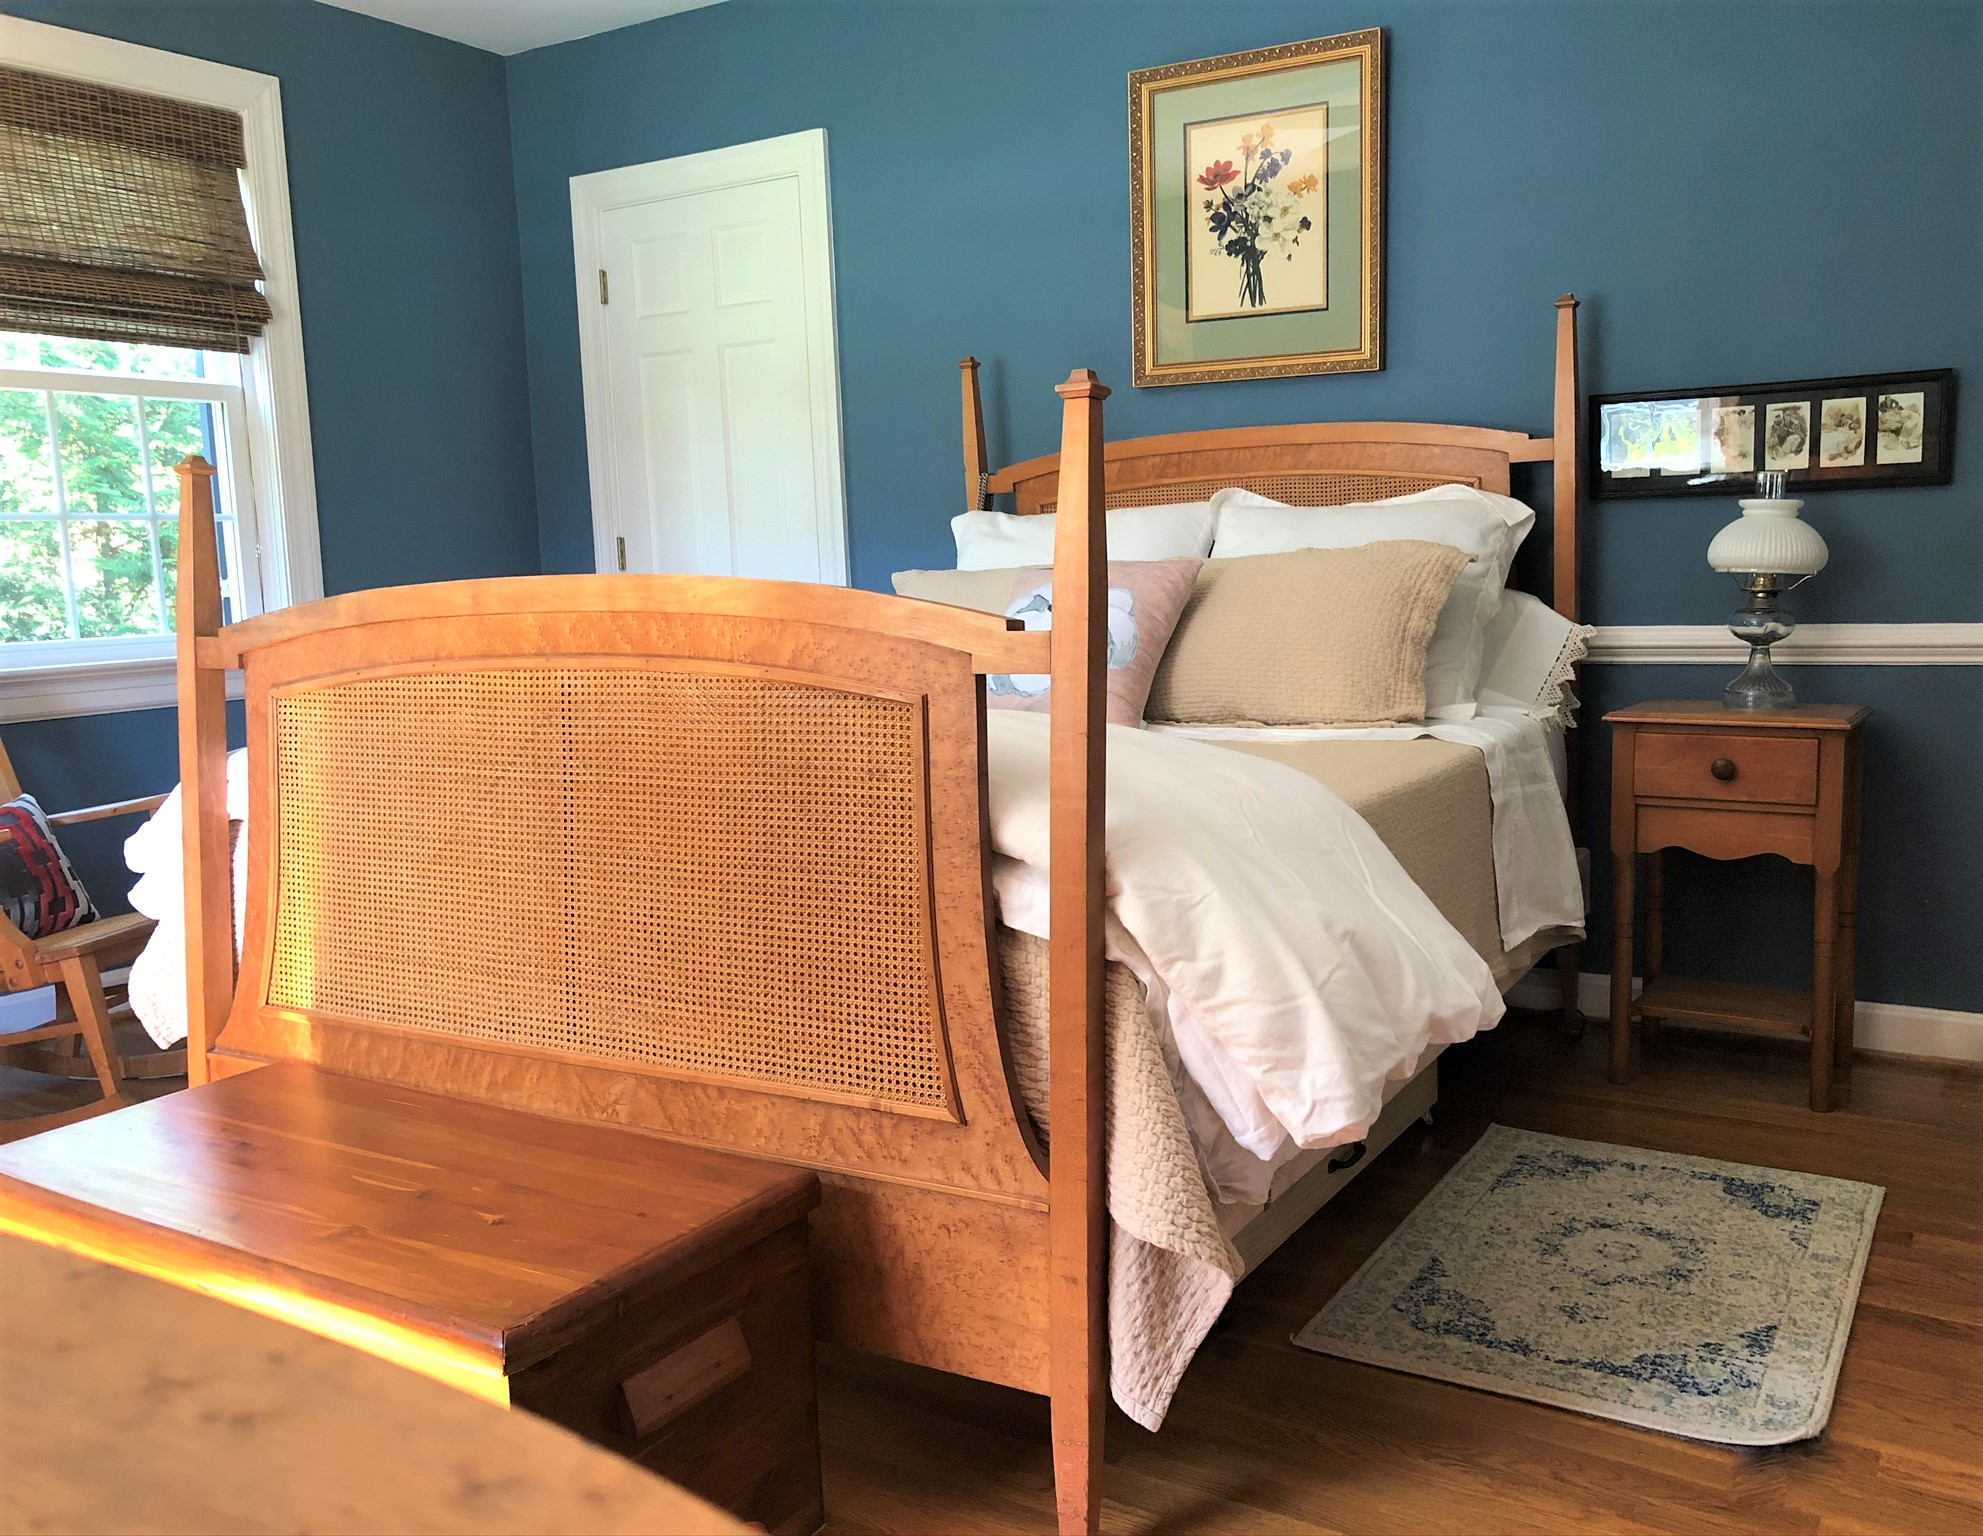 Master bedroom with blue walls and antique Bird's Eye Maple furniture